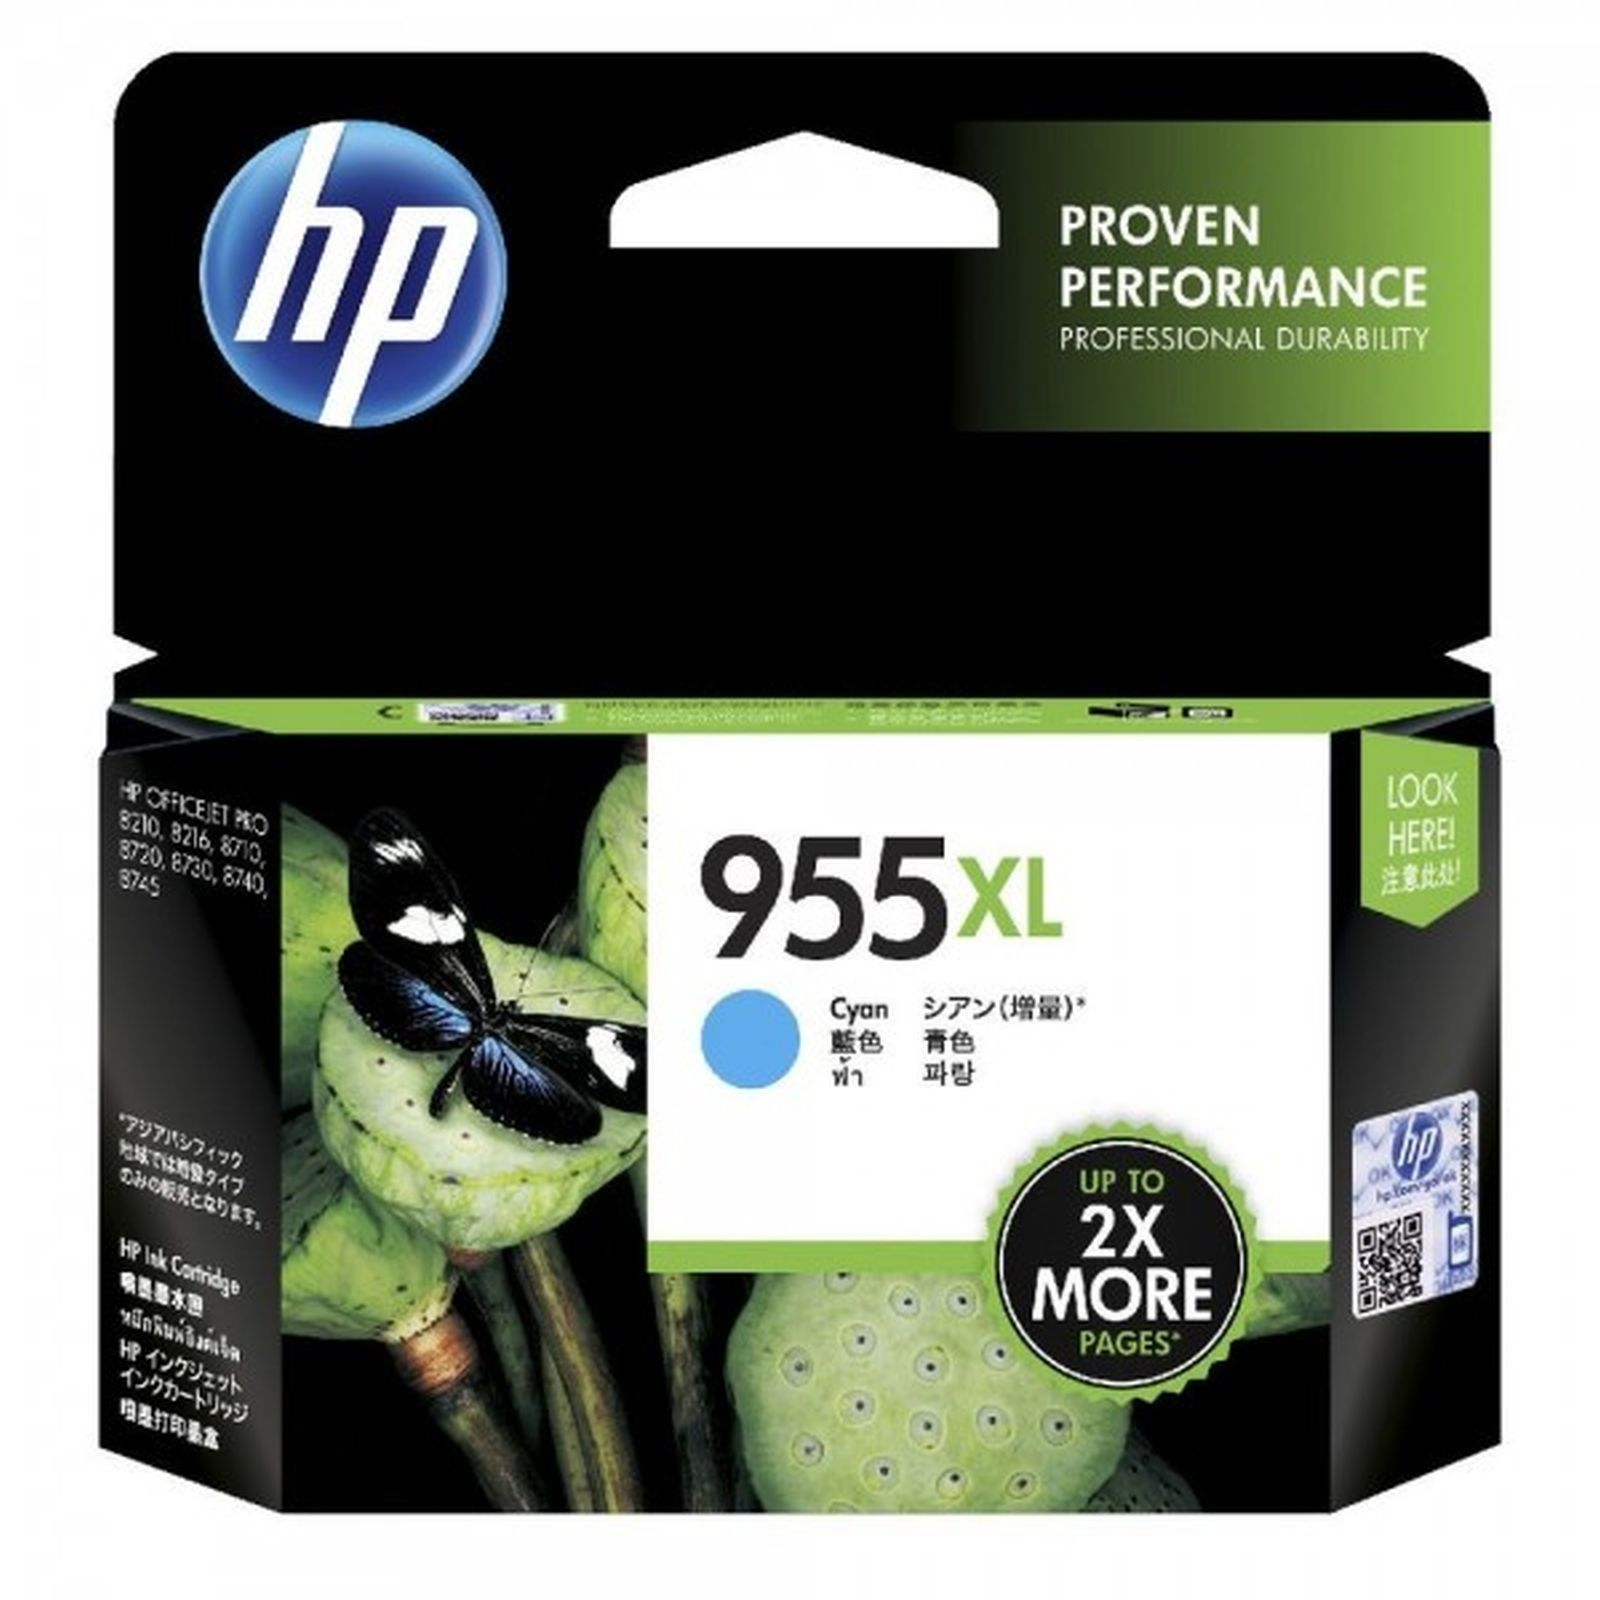 HP 955XL Cyan Ink Cartridge